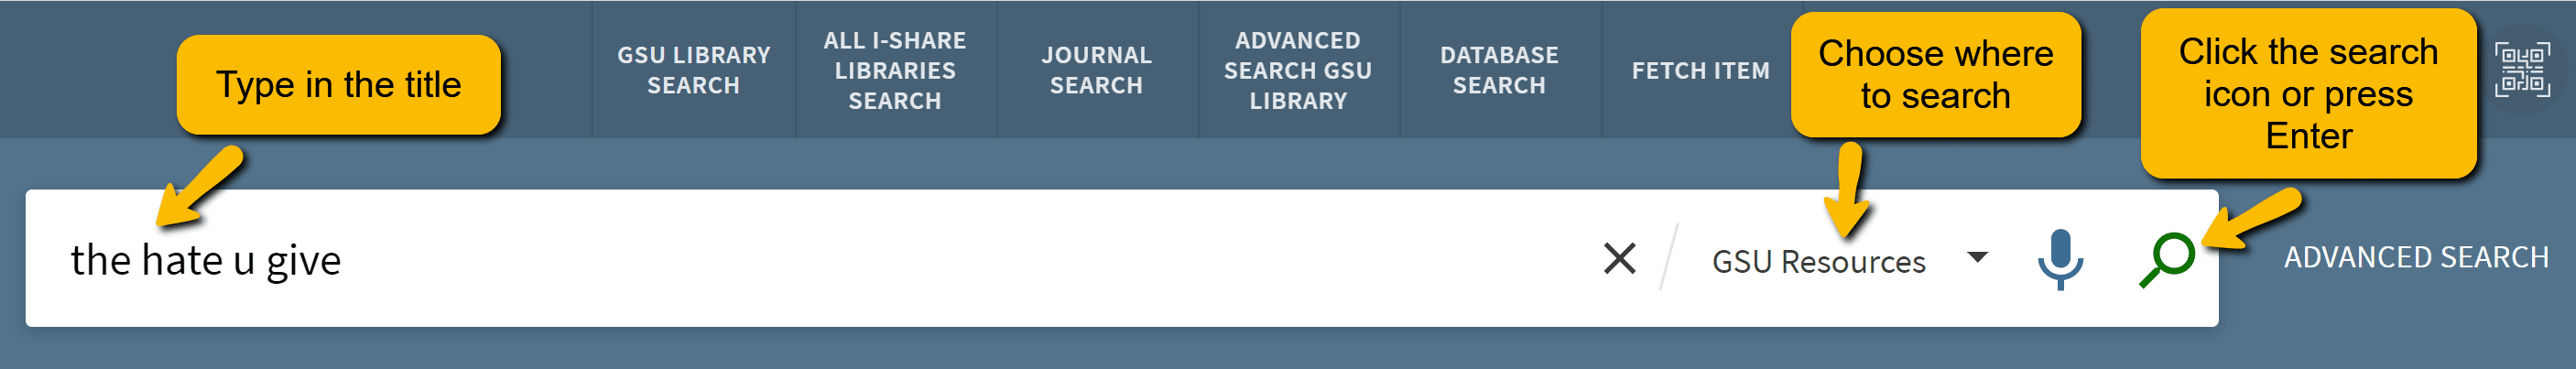 Searching the catalog by title